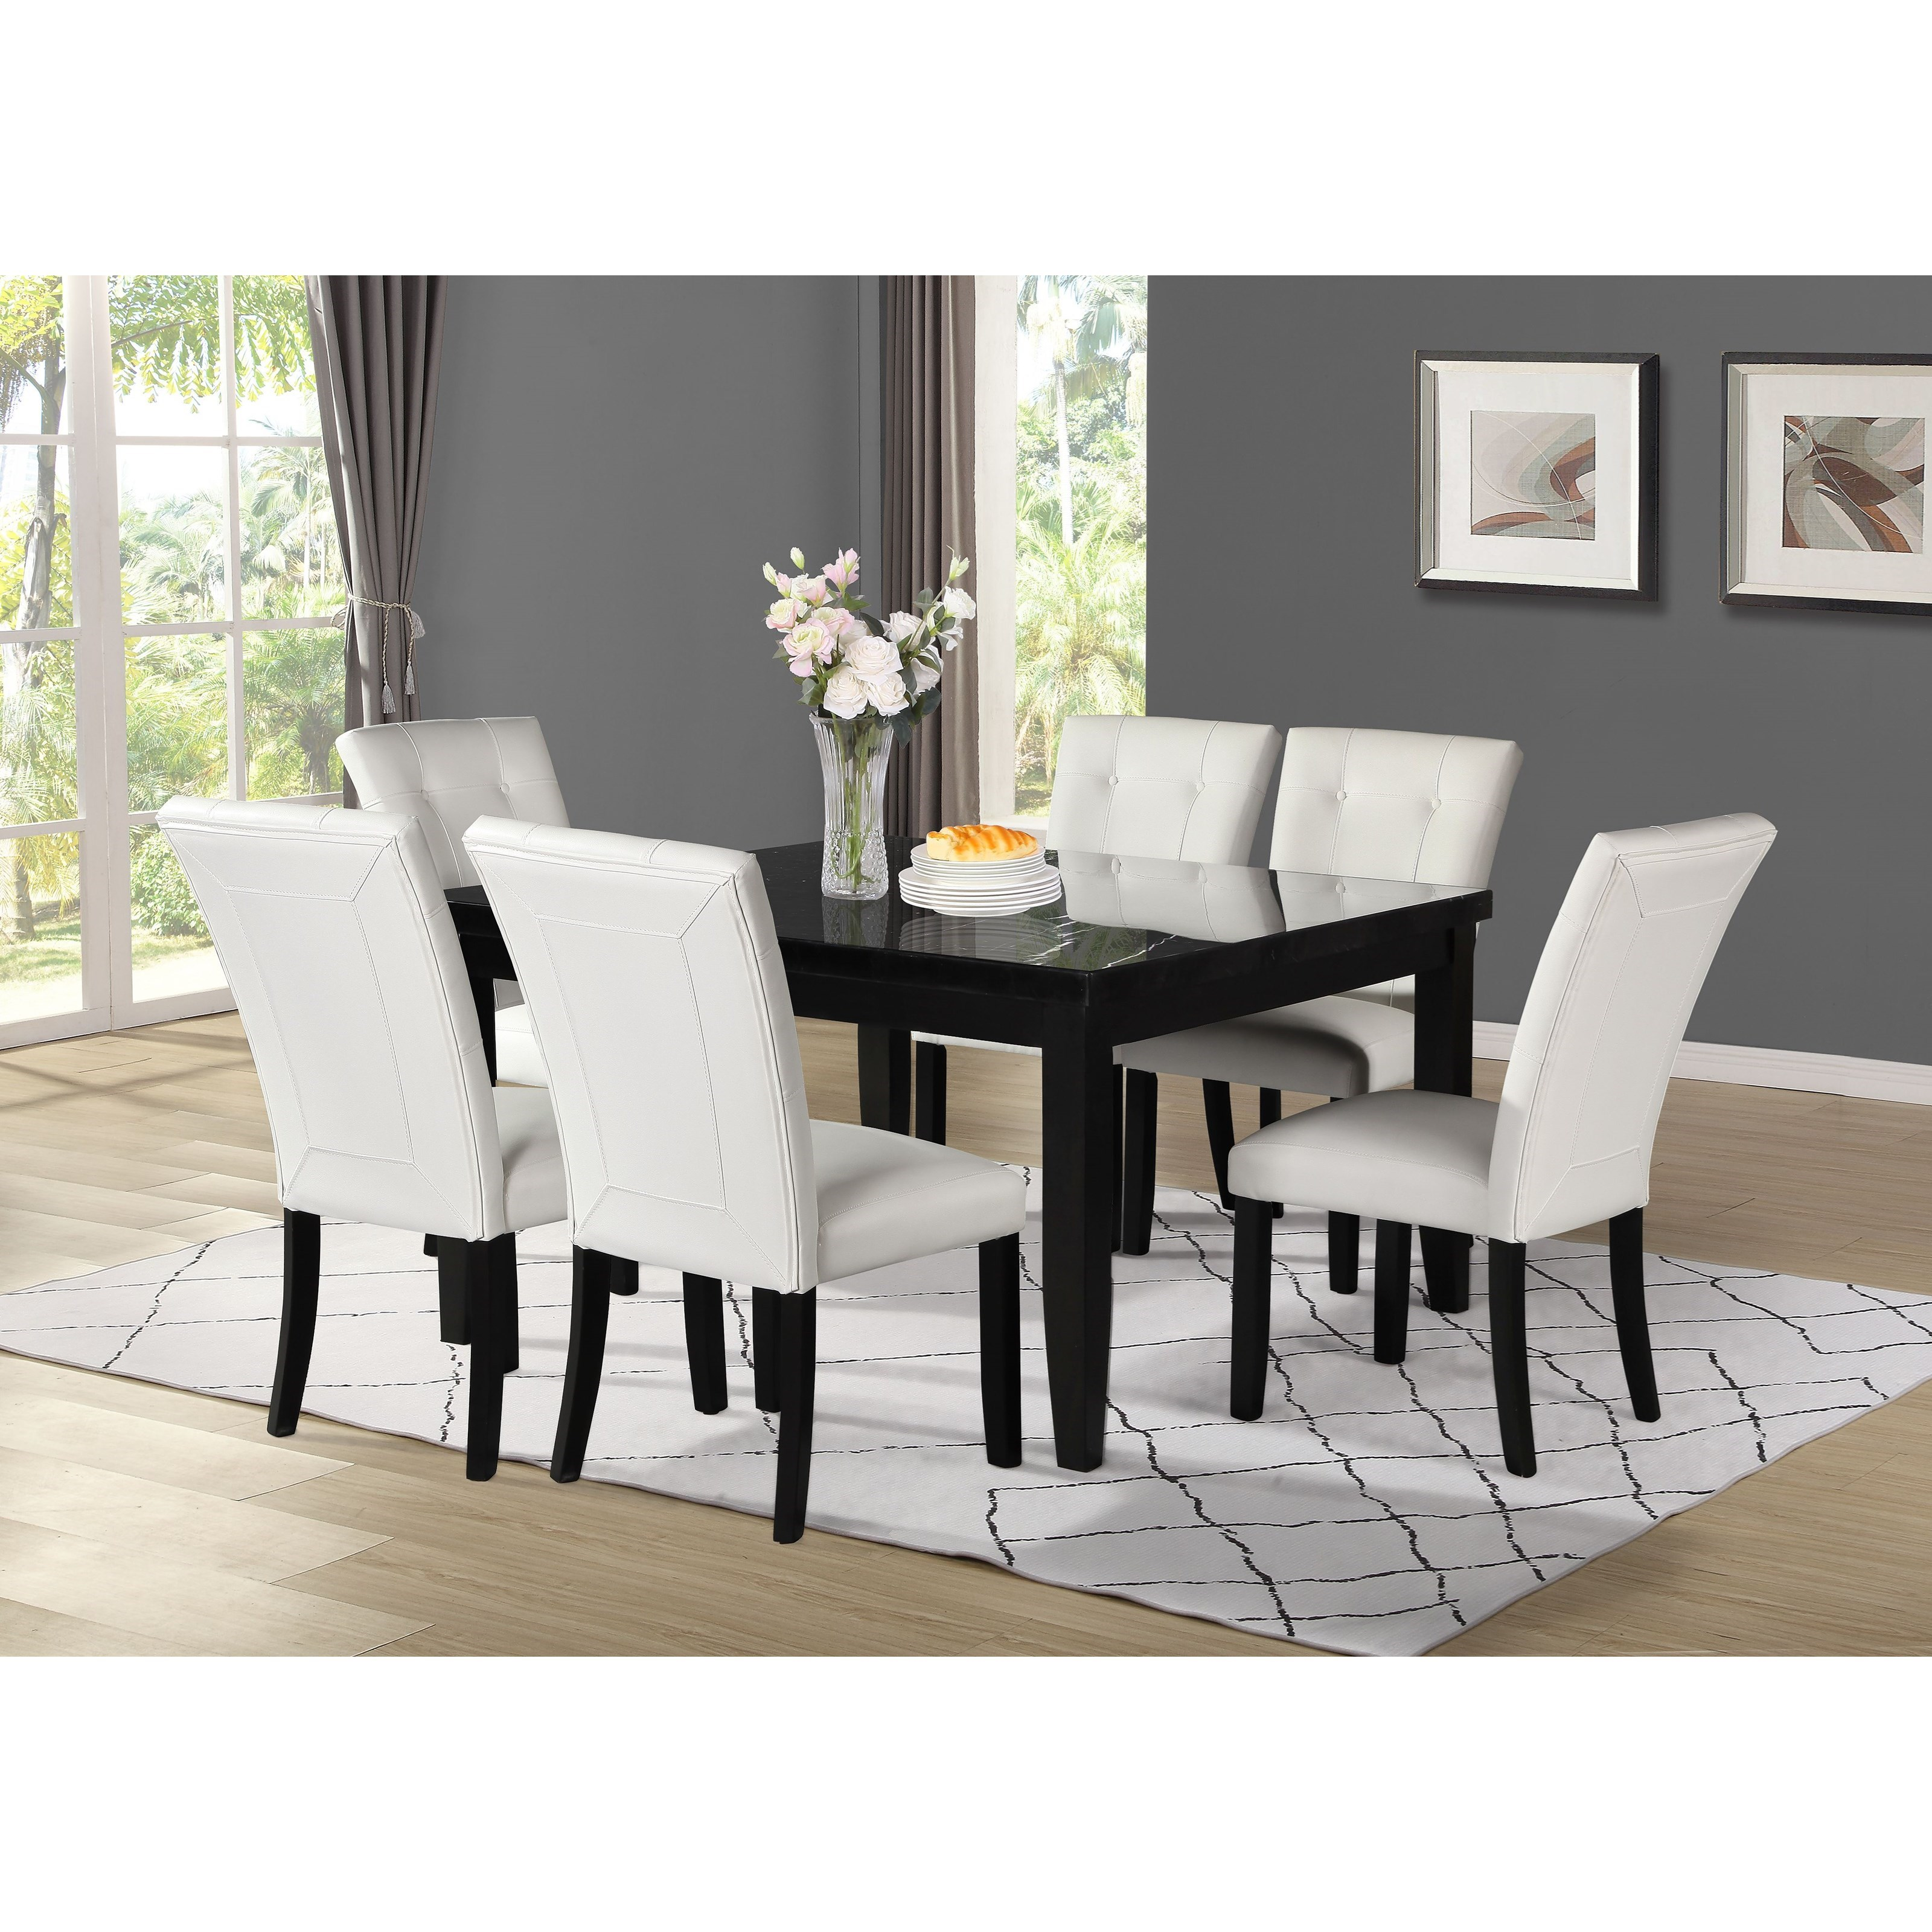 Markina 7-Piece Square Table and Chair Set  by Steve Silver at Northeast Factory Direct